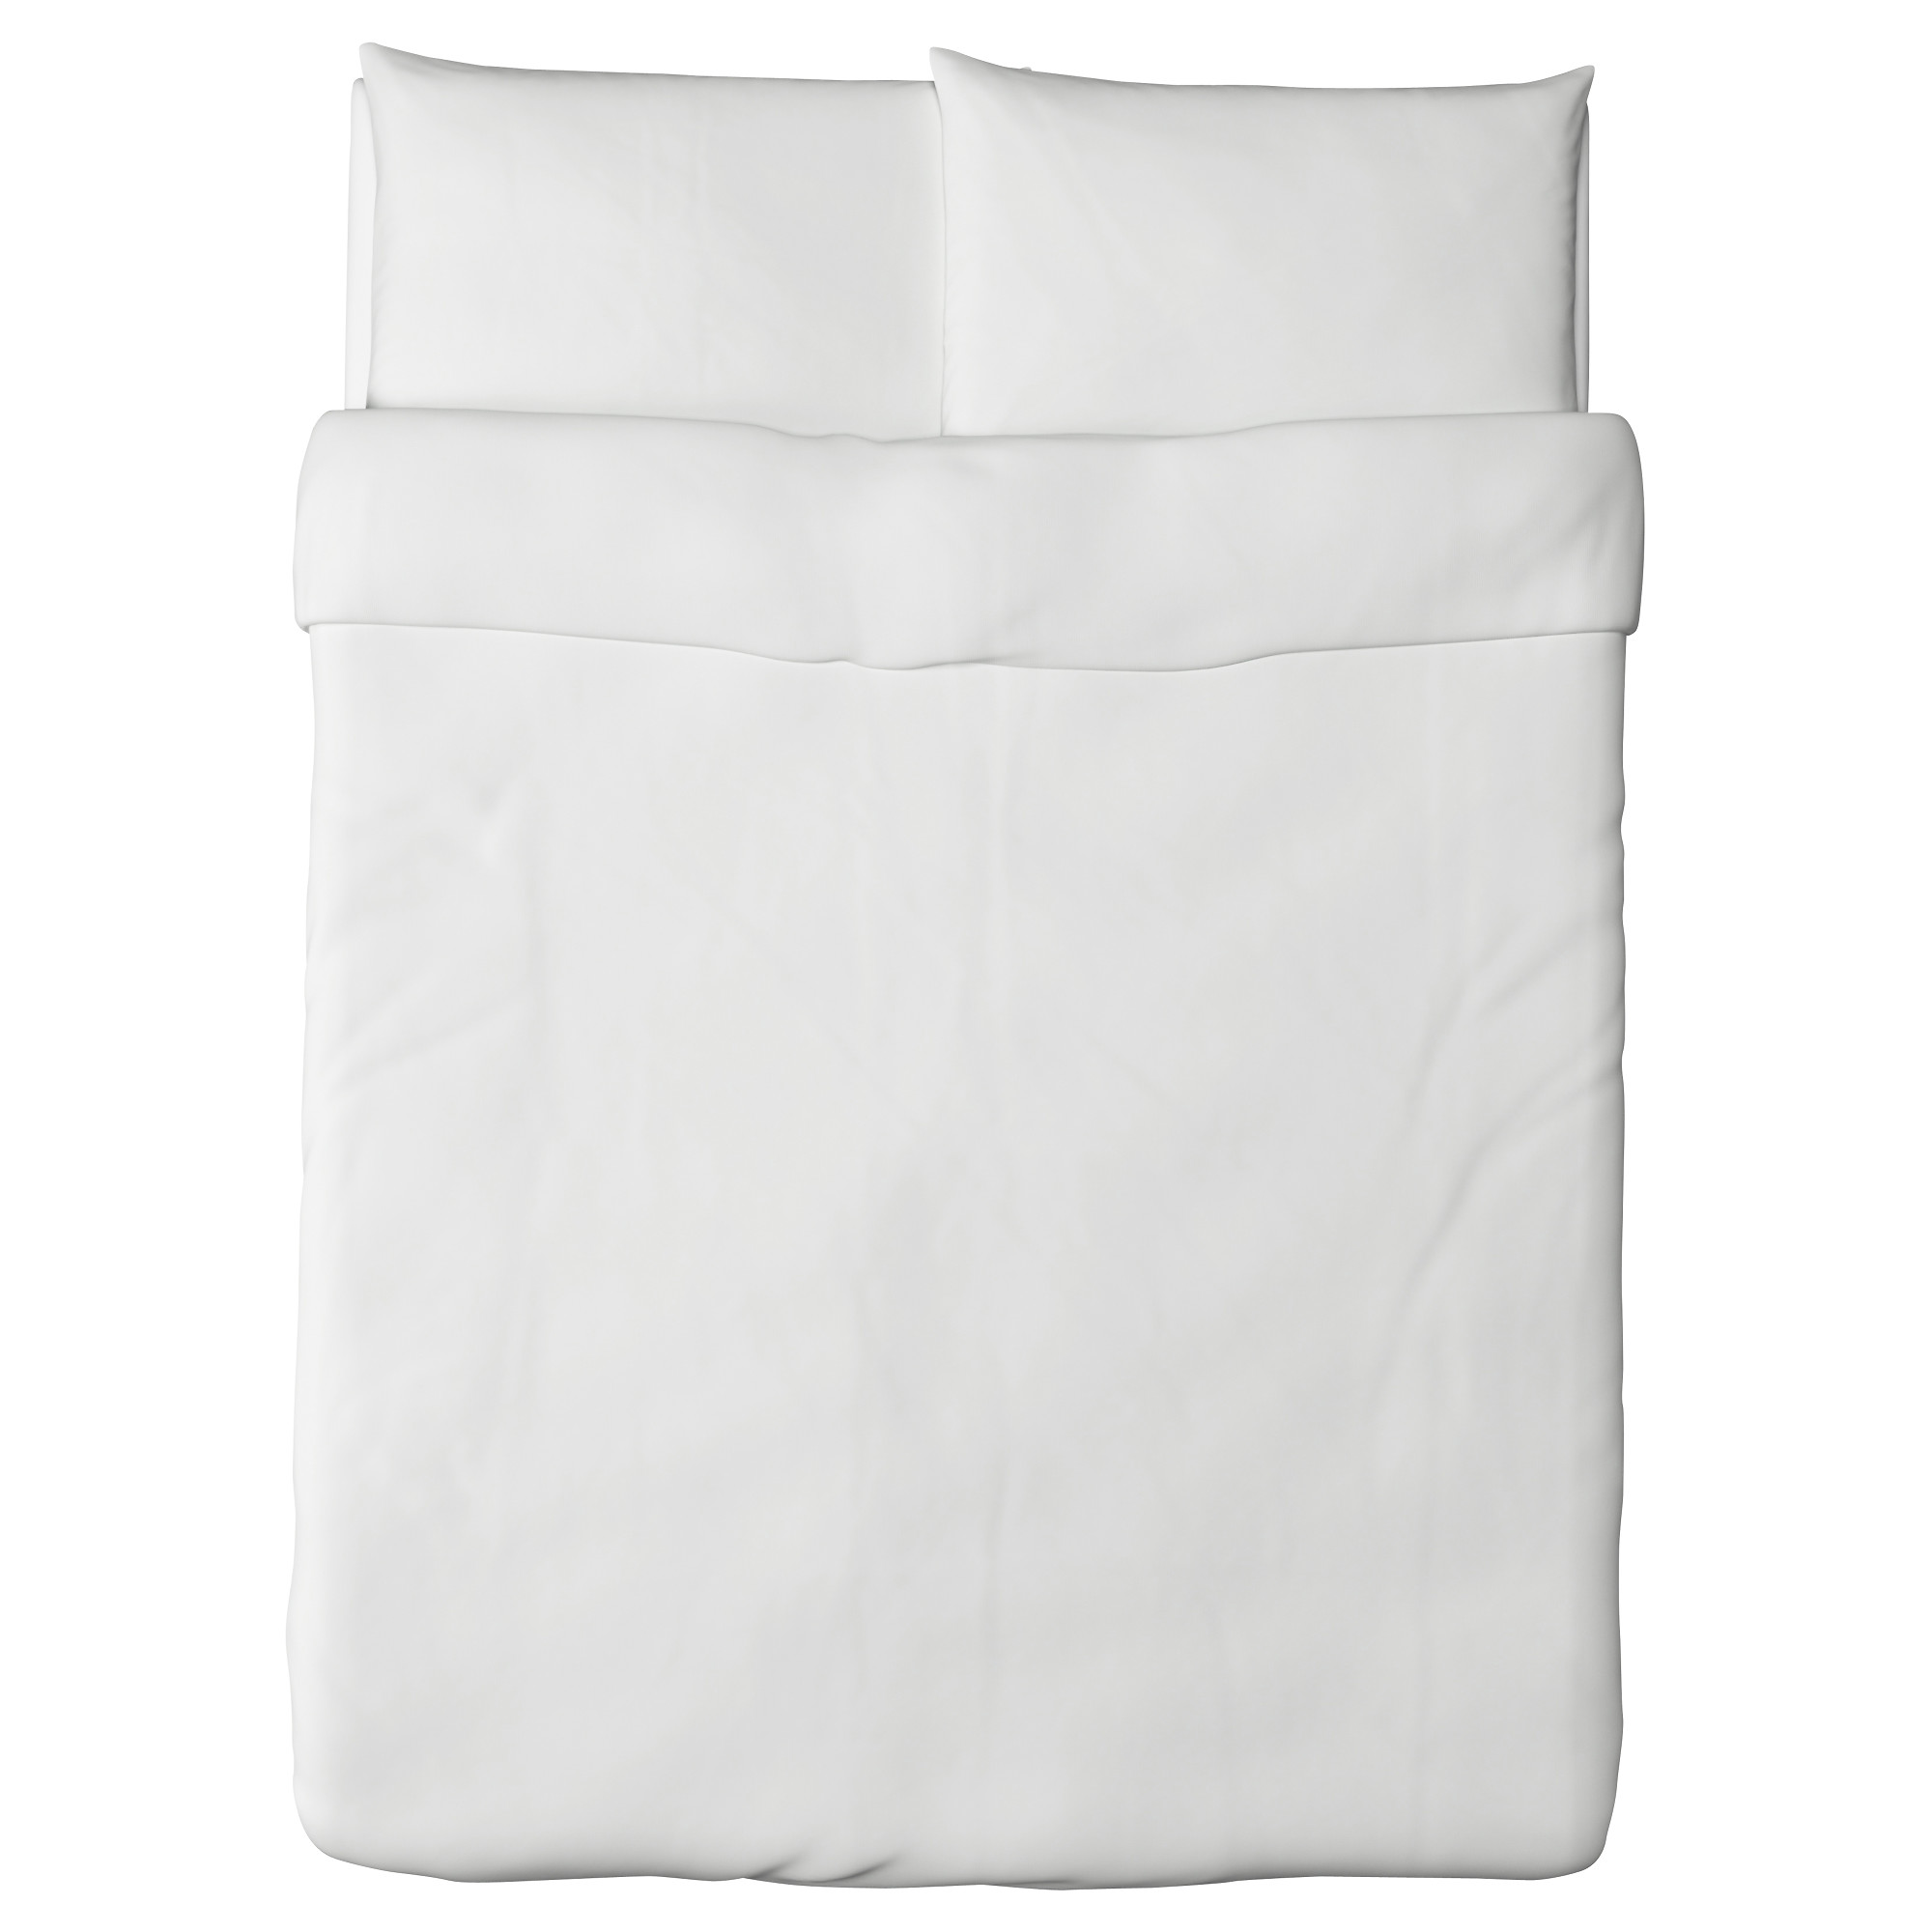 Duvet Covers Ikea | Target Comforter Sets | White Duvet Cover